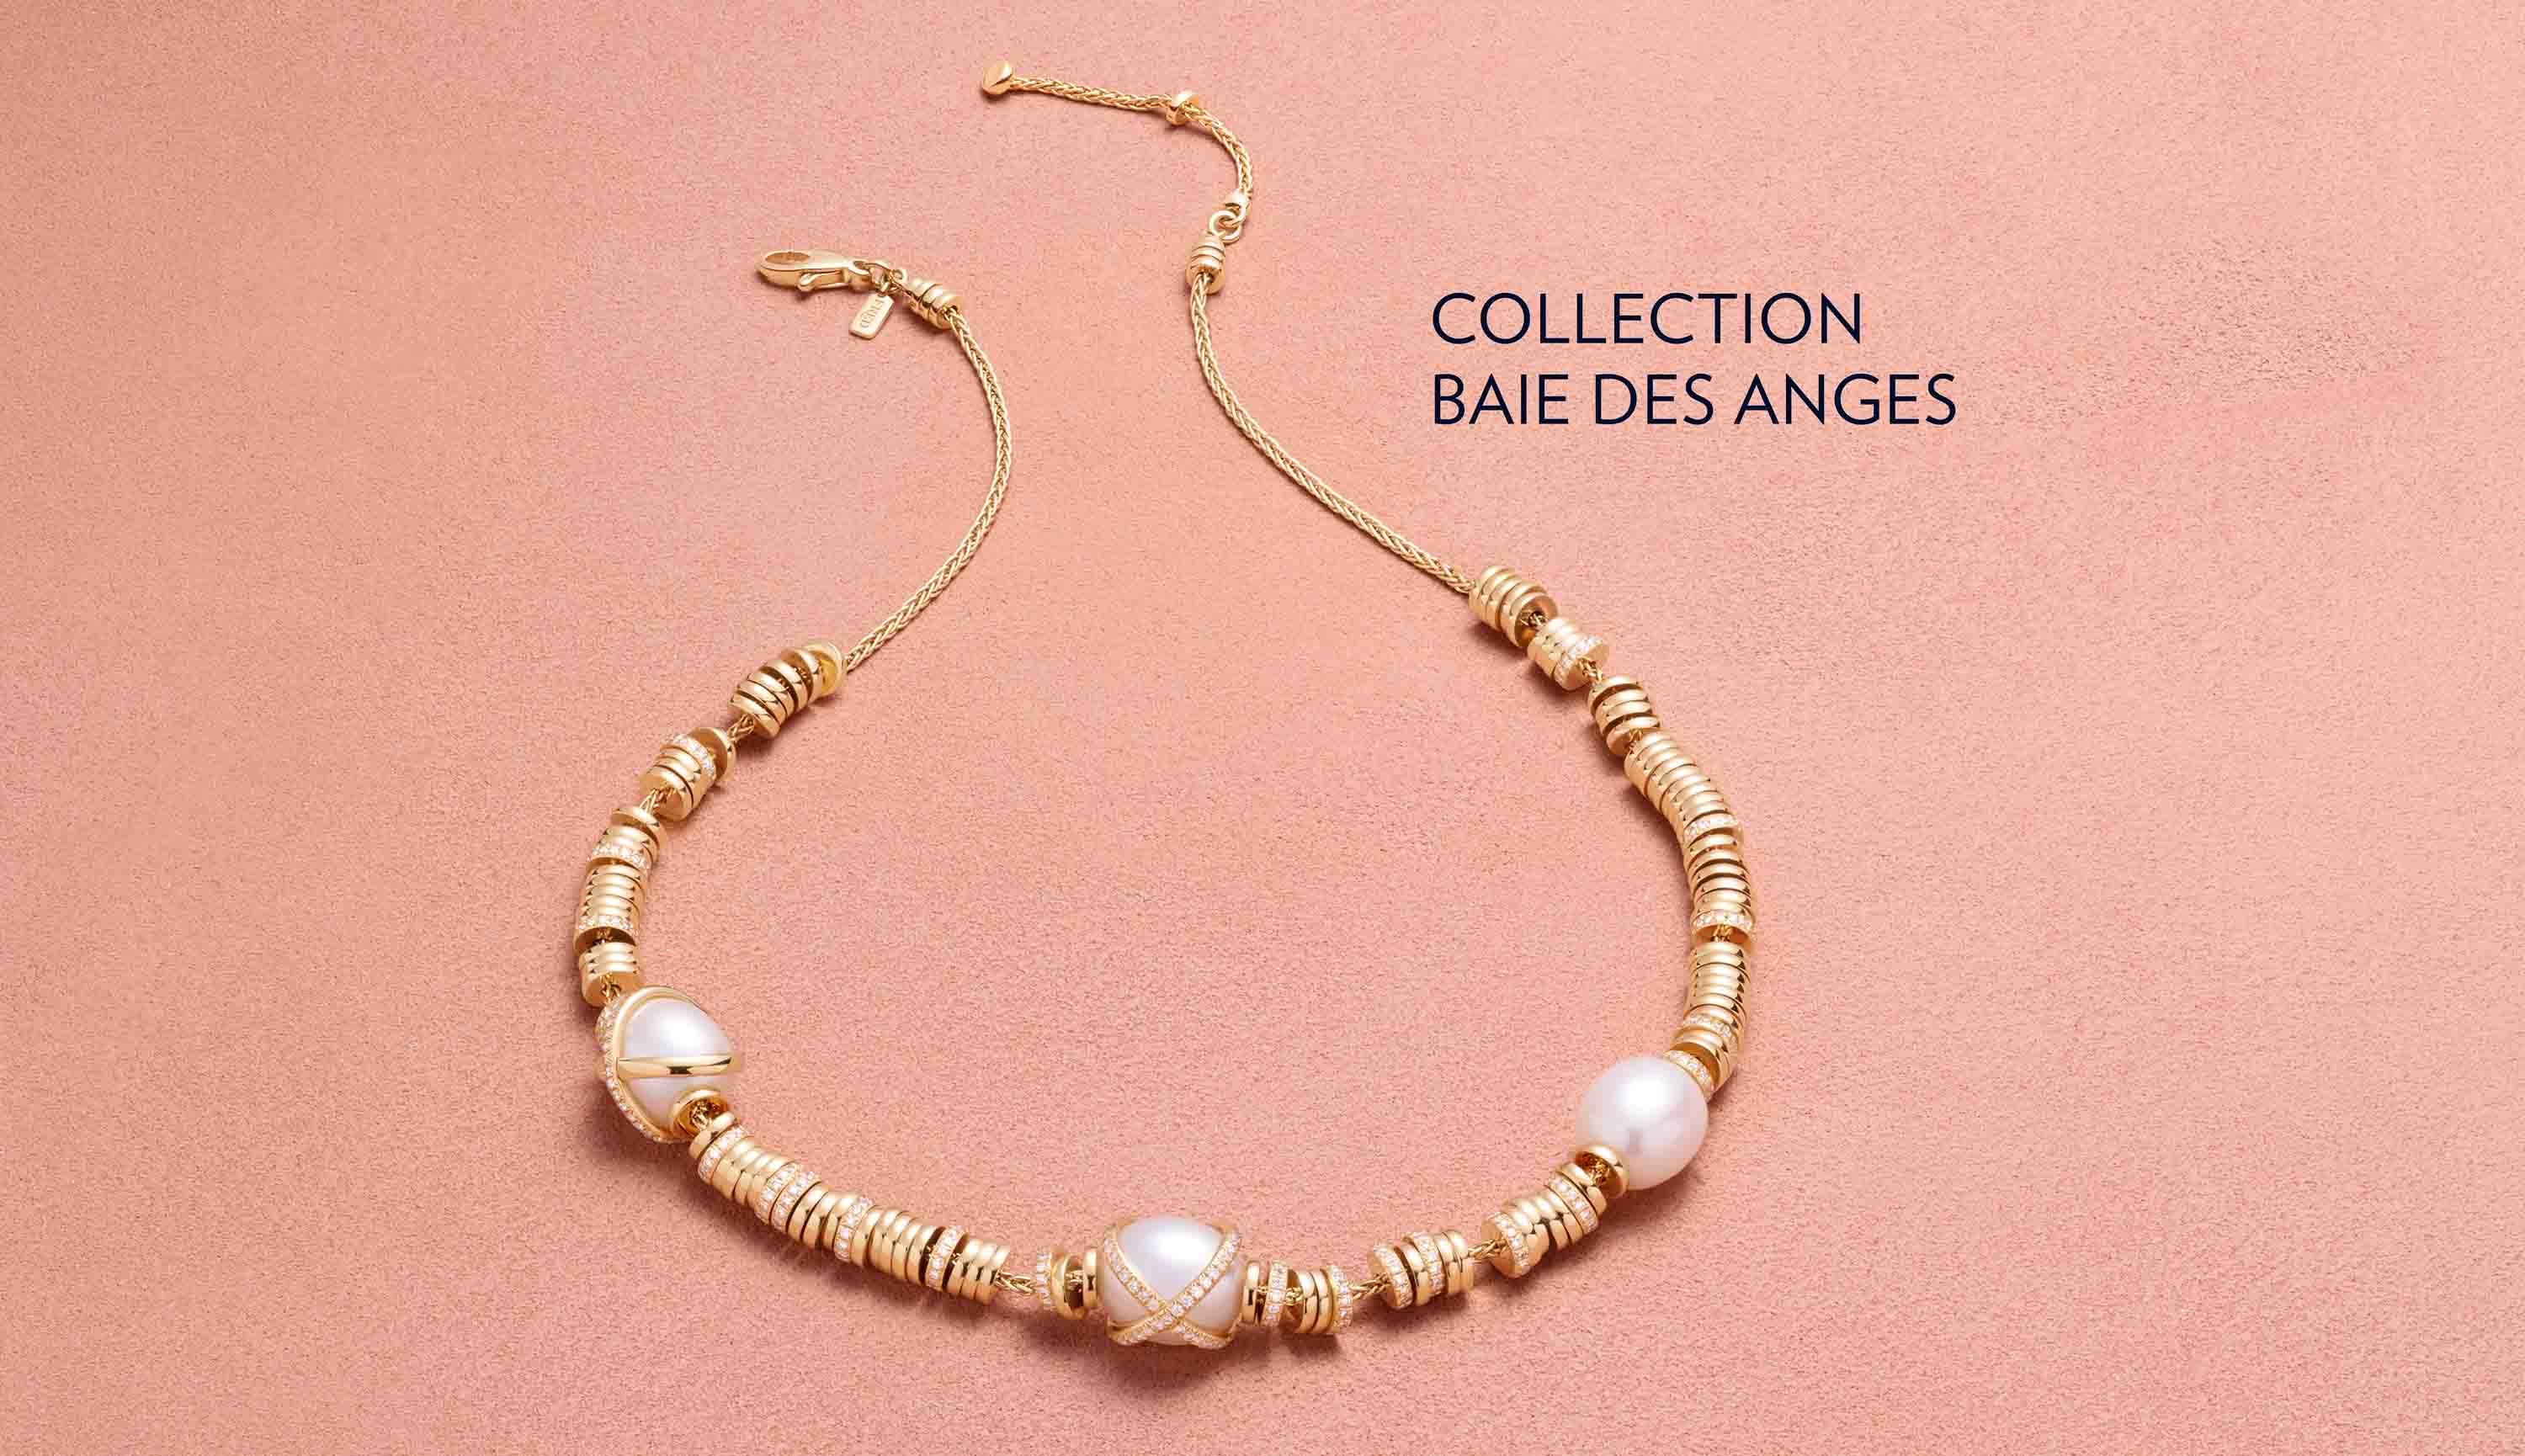 Collection Baie Des Anges